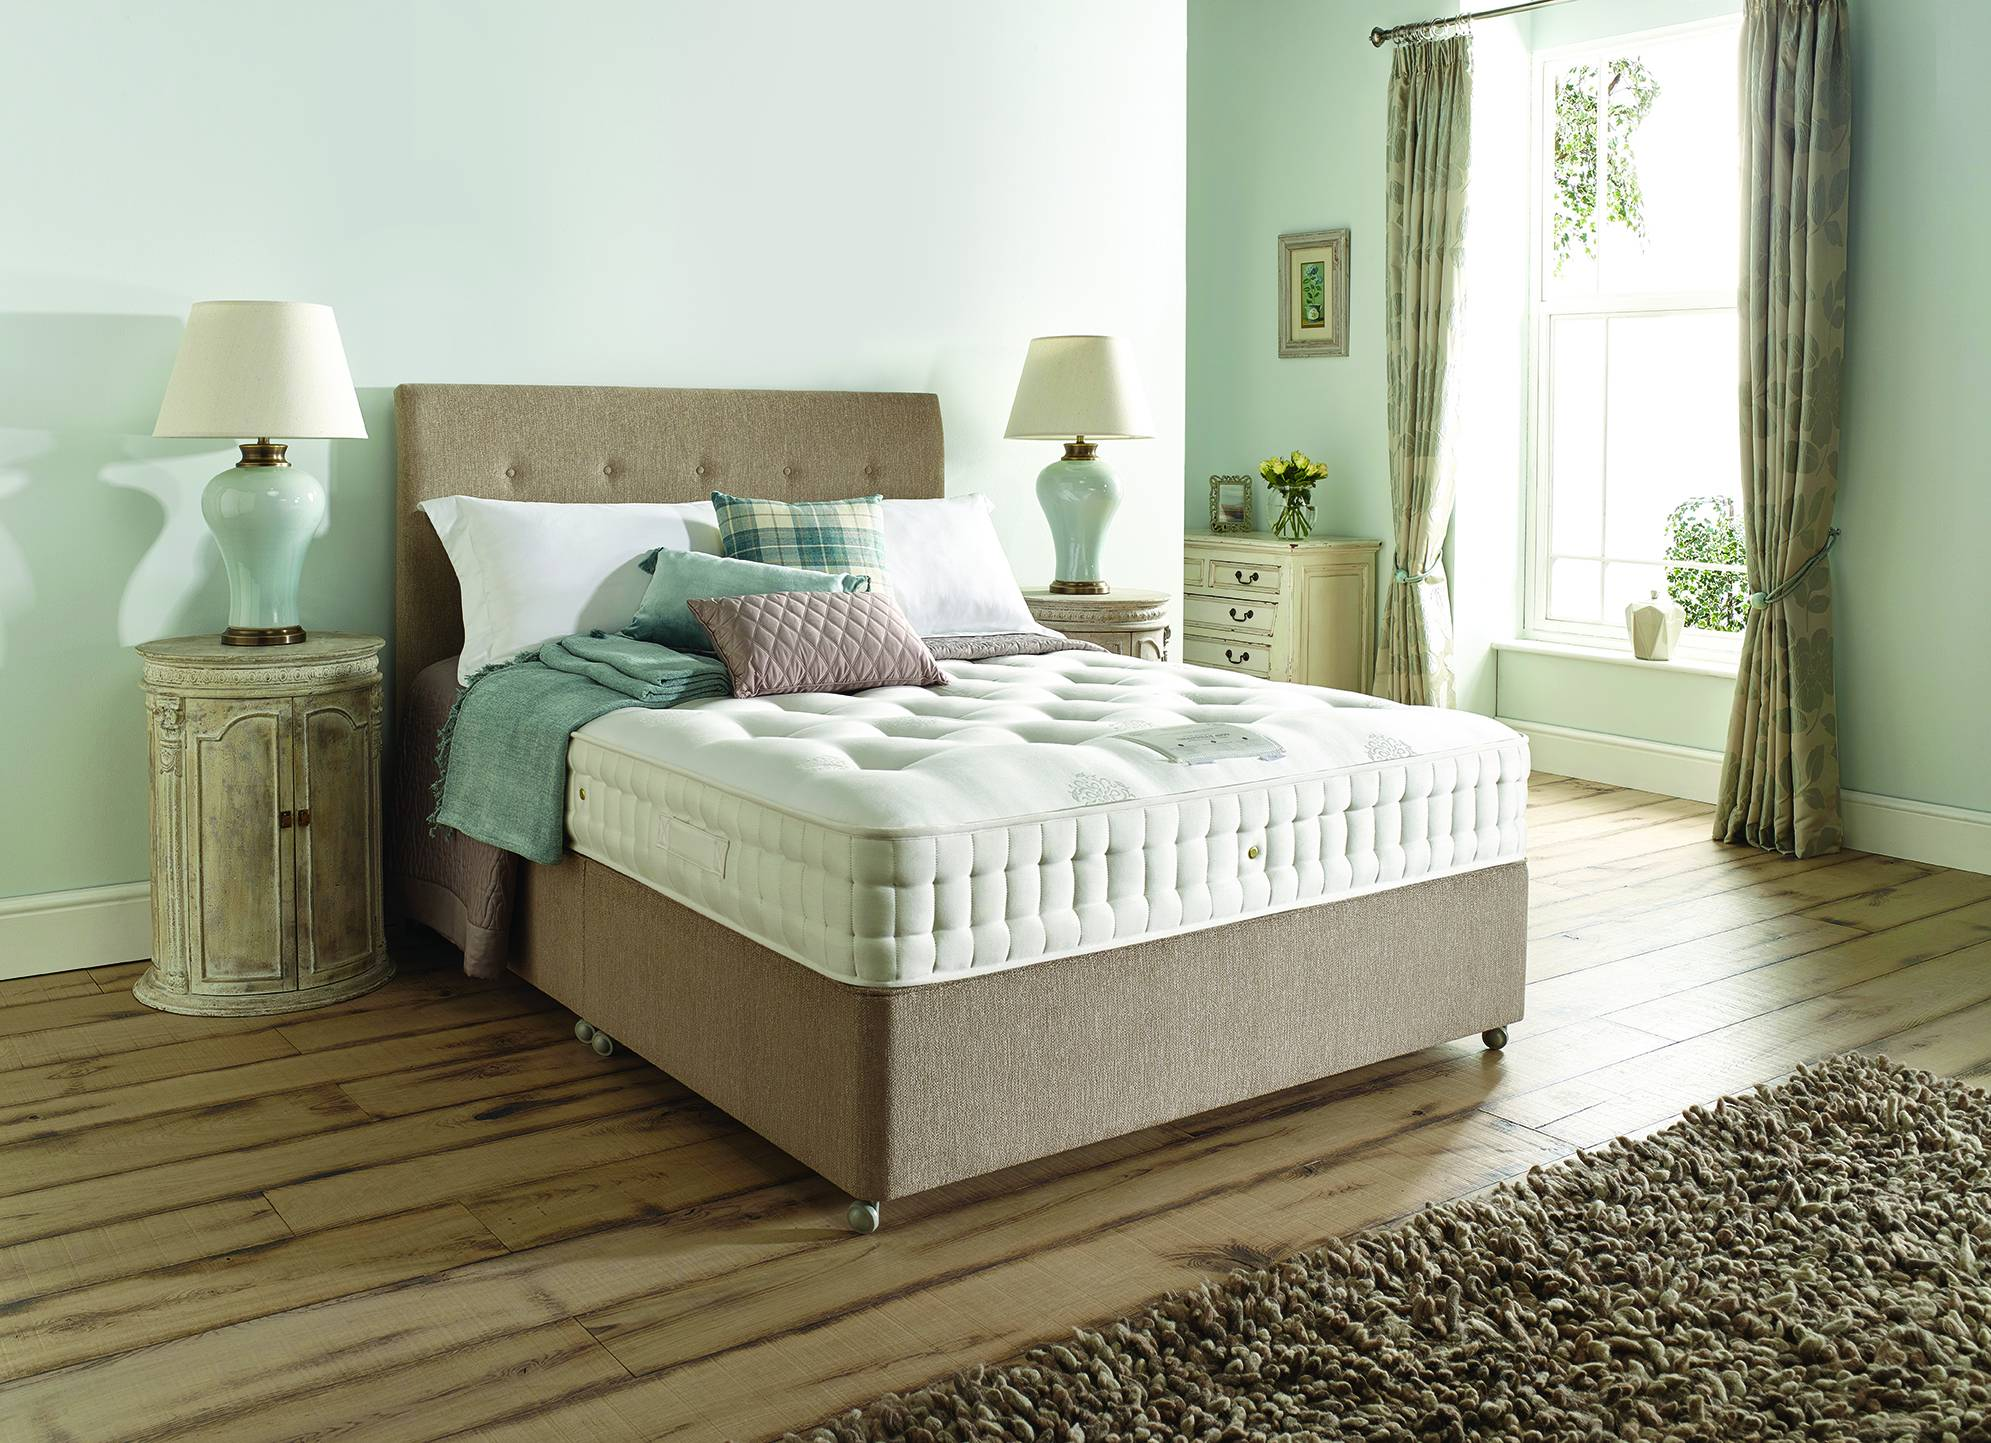 Moonraker Beds Harrison S Beds Chantilly 4700 Divan Beds Rangers Furnishing